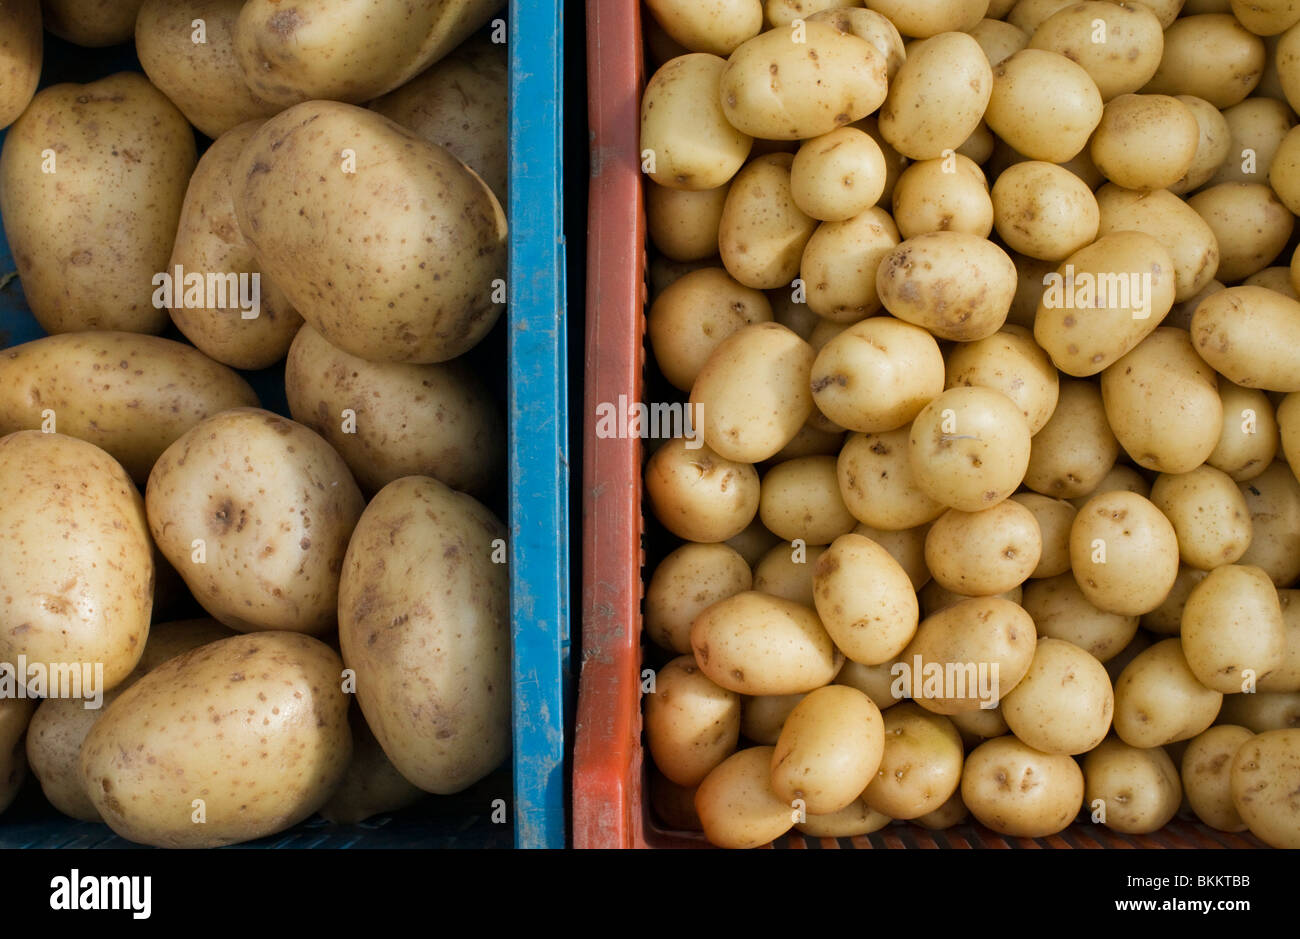 Large baking potatoes and small new or salad potatoes selling in a market, UK. - Stock Image